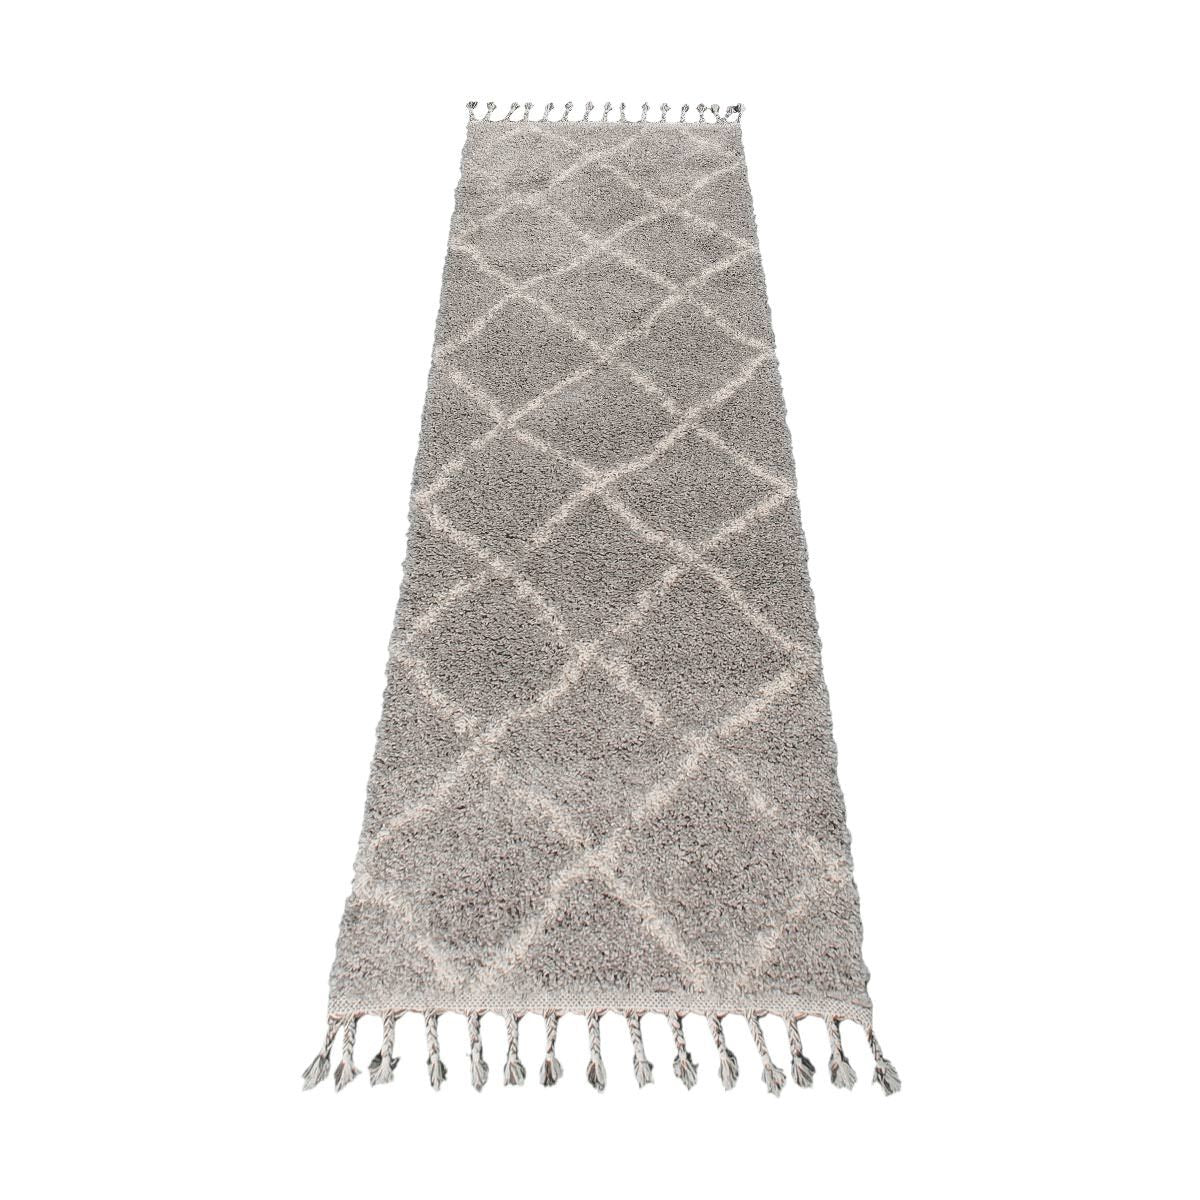 Shaggy Marrakech Rug 07 Grey/Cream Runner 5